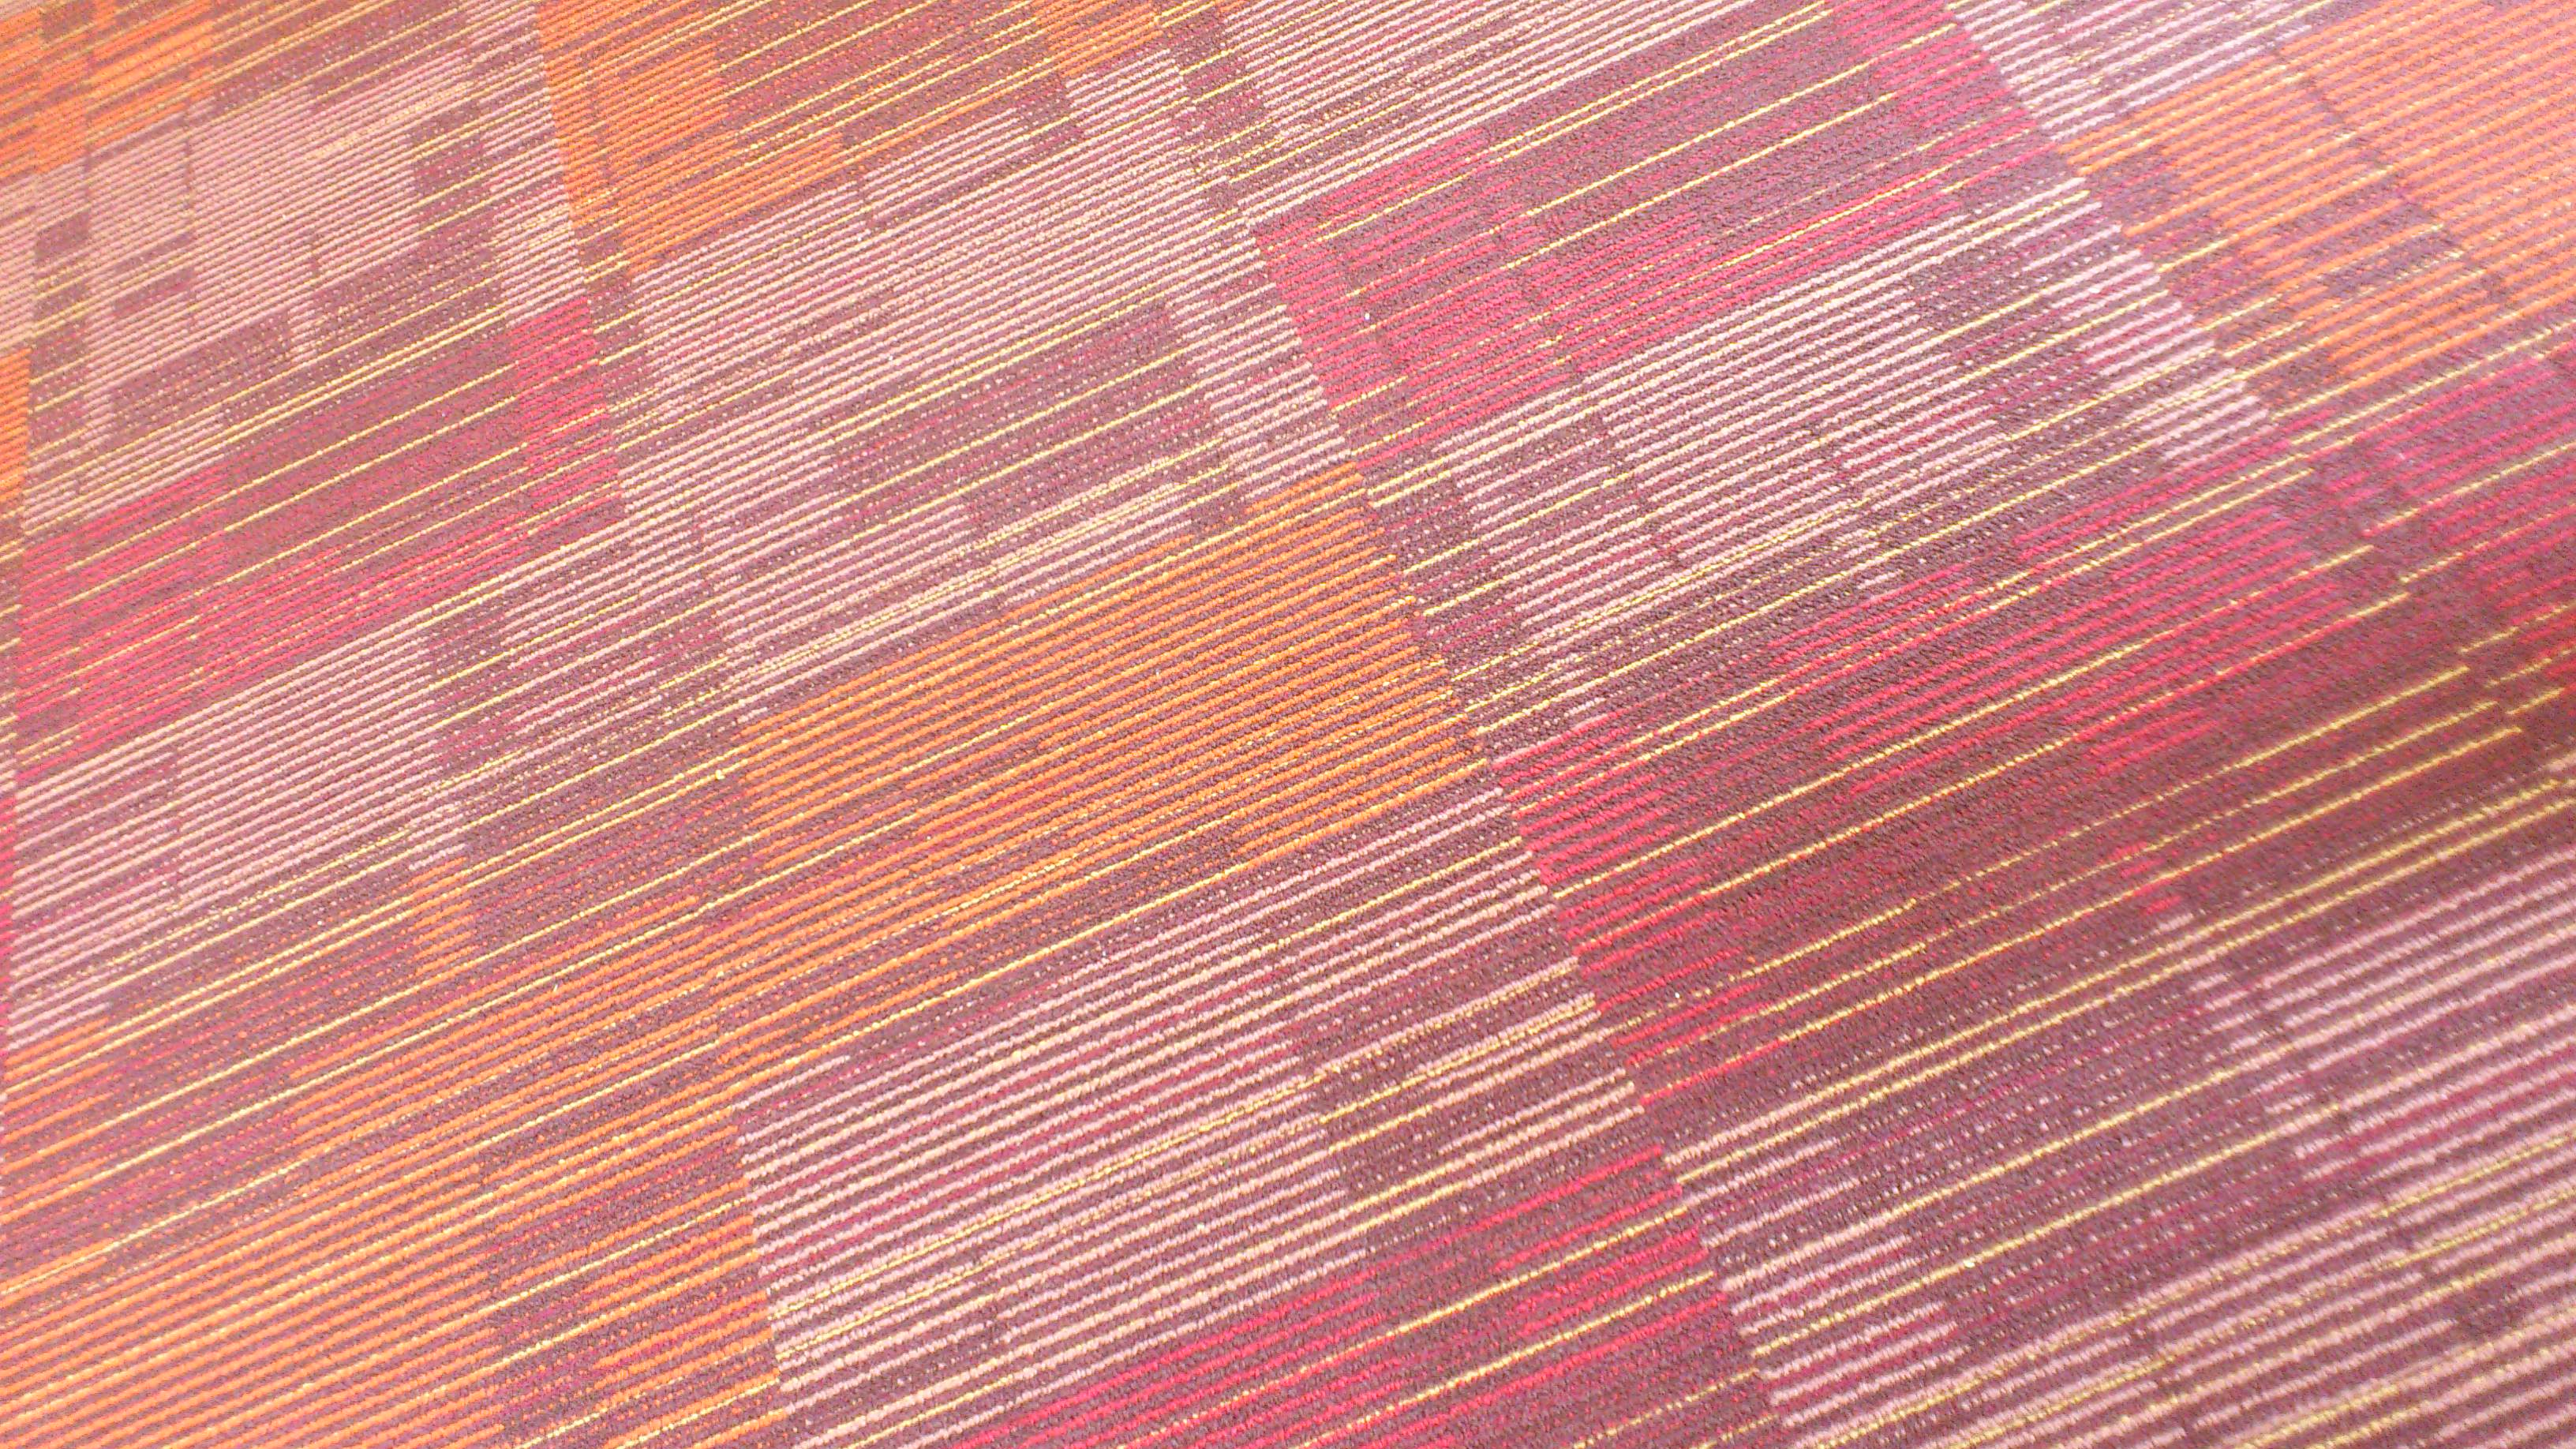 Carpet design reminds me of the moquette pattern on for London underground moquette